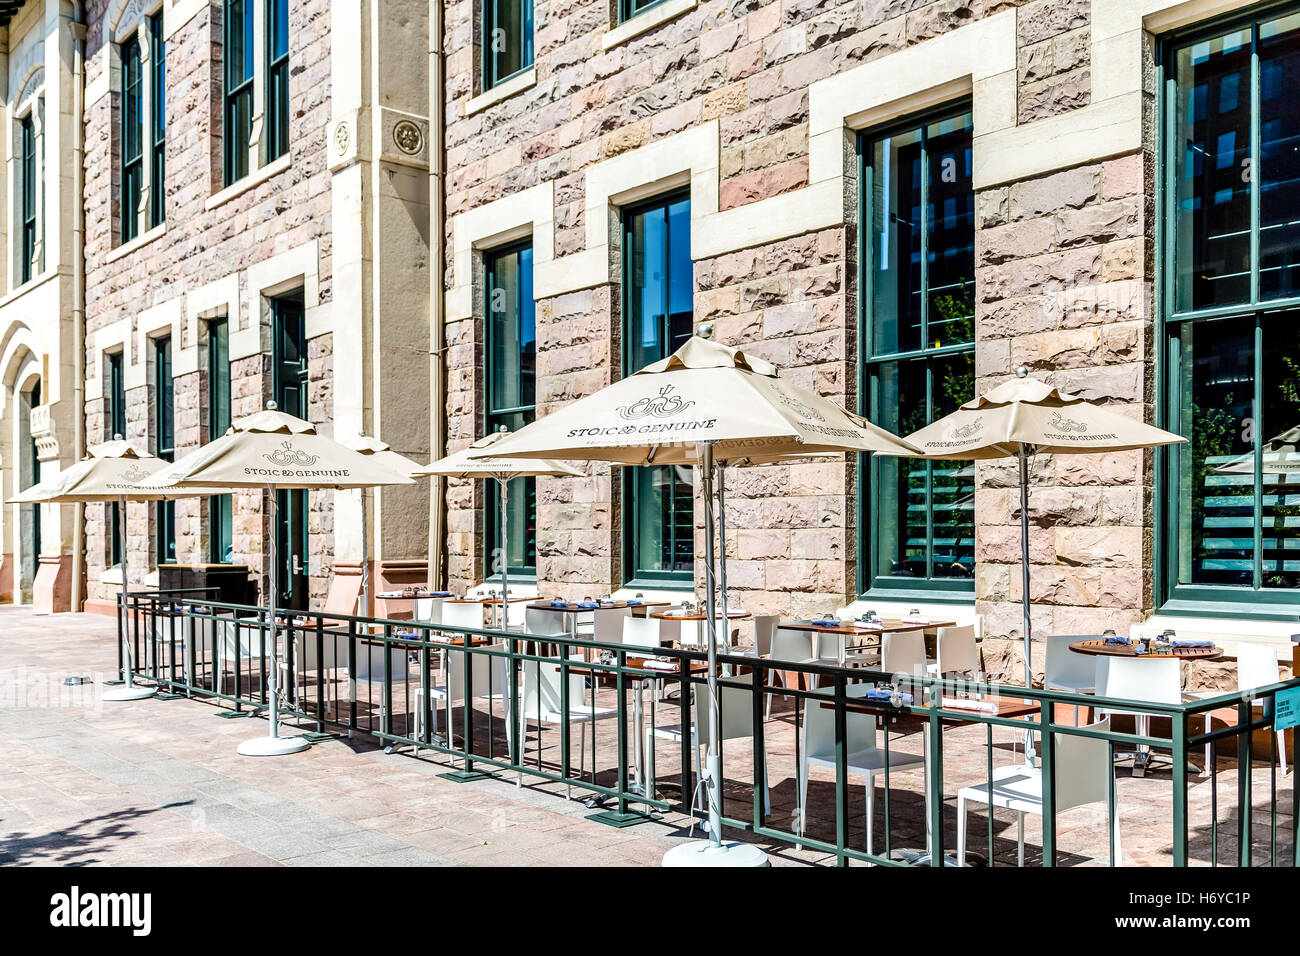 Umbrellas and Outdoor Seating at Stoic & Genuine - Stock Image